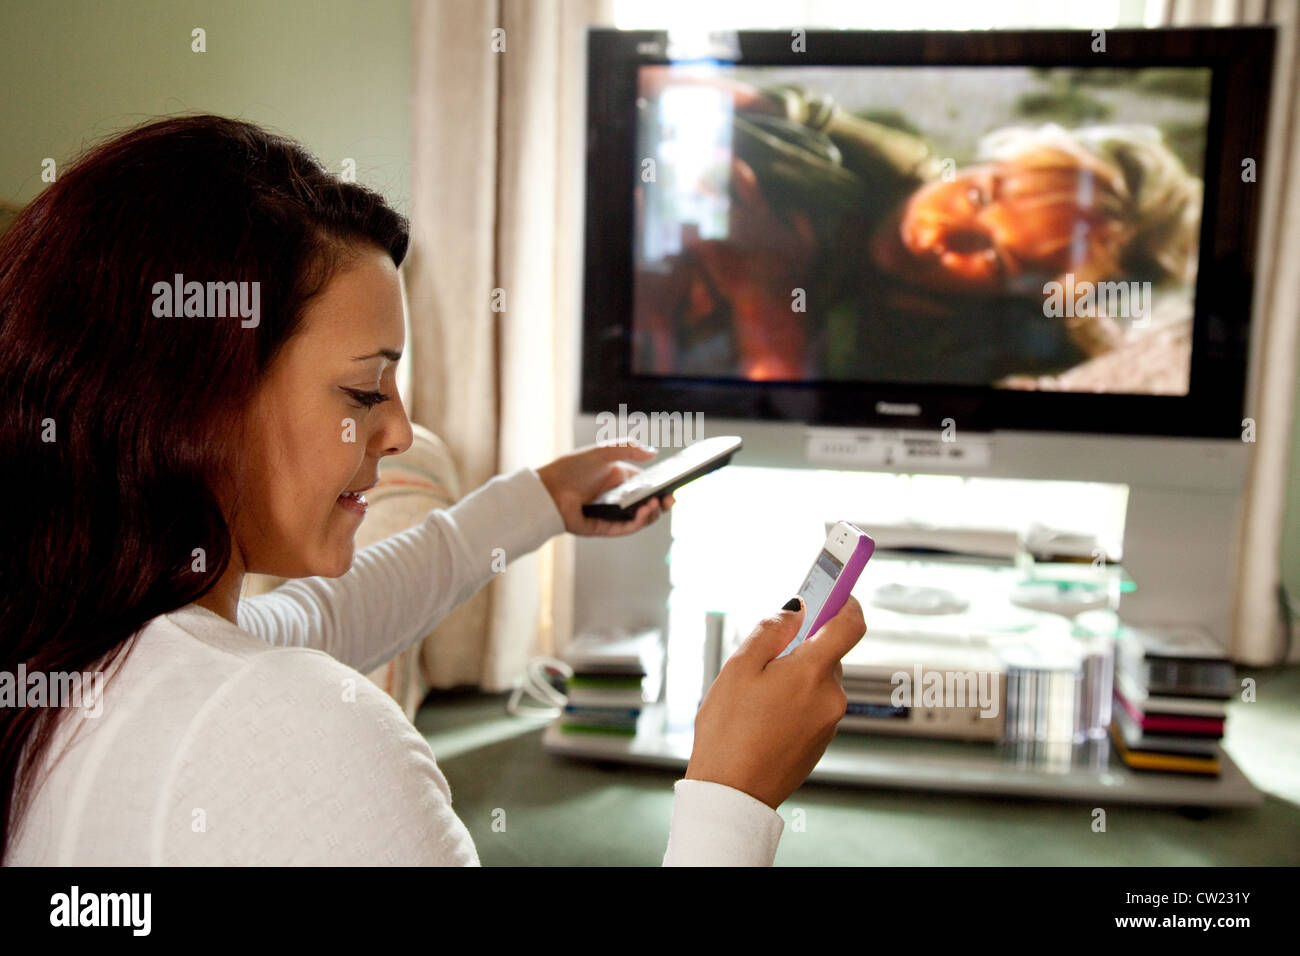 a-young-woman-watching-tv-using-a-remote